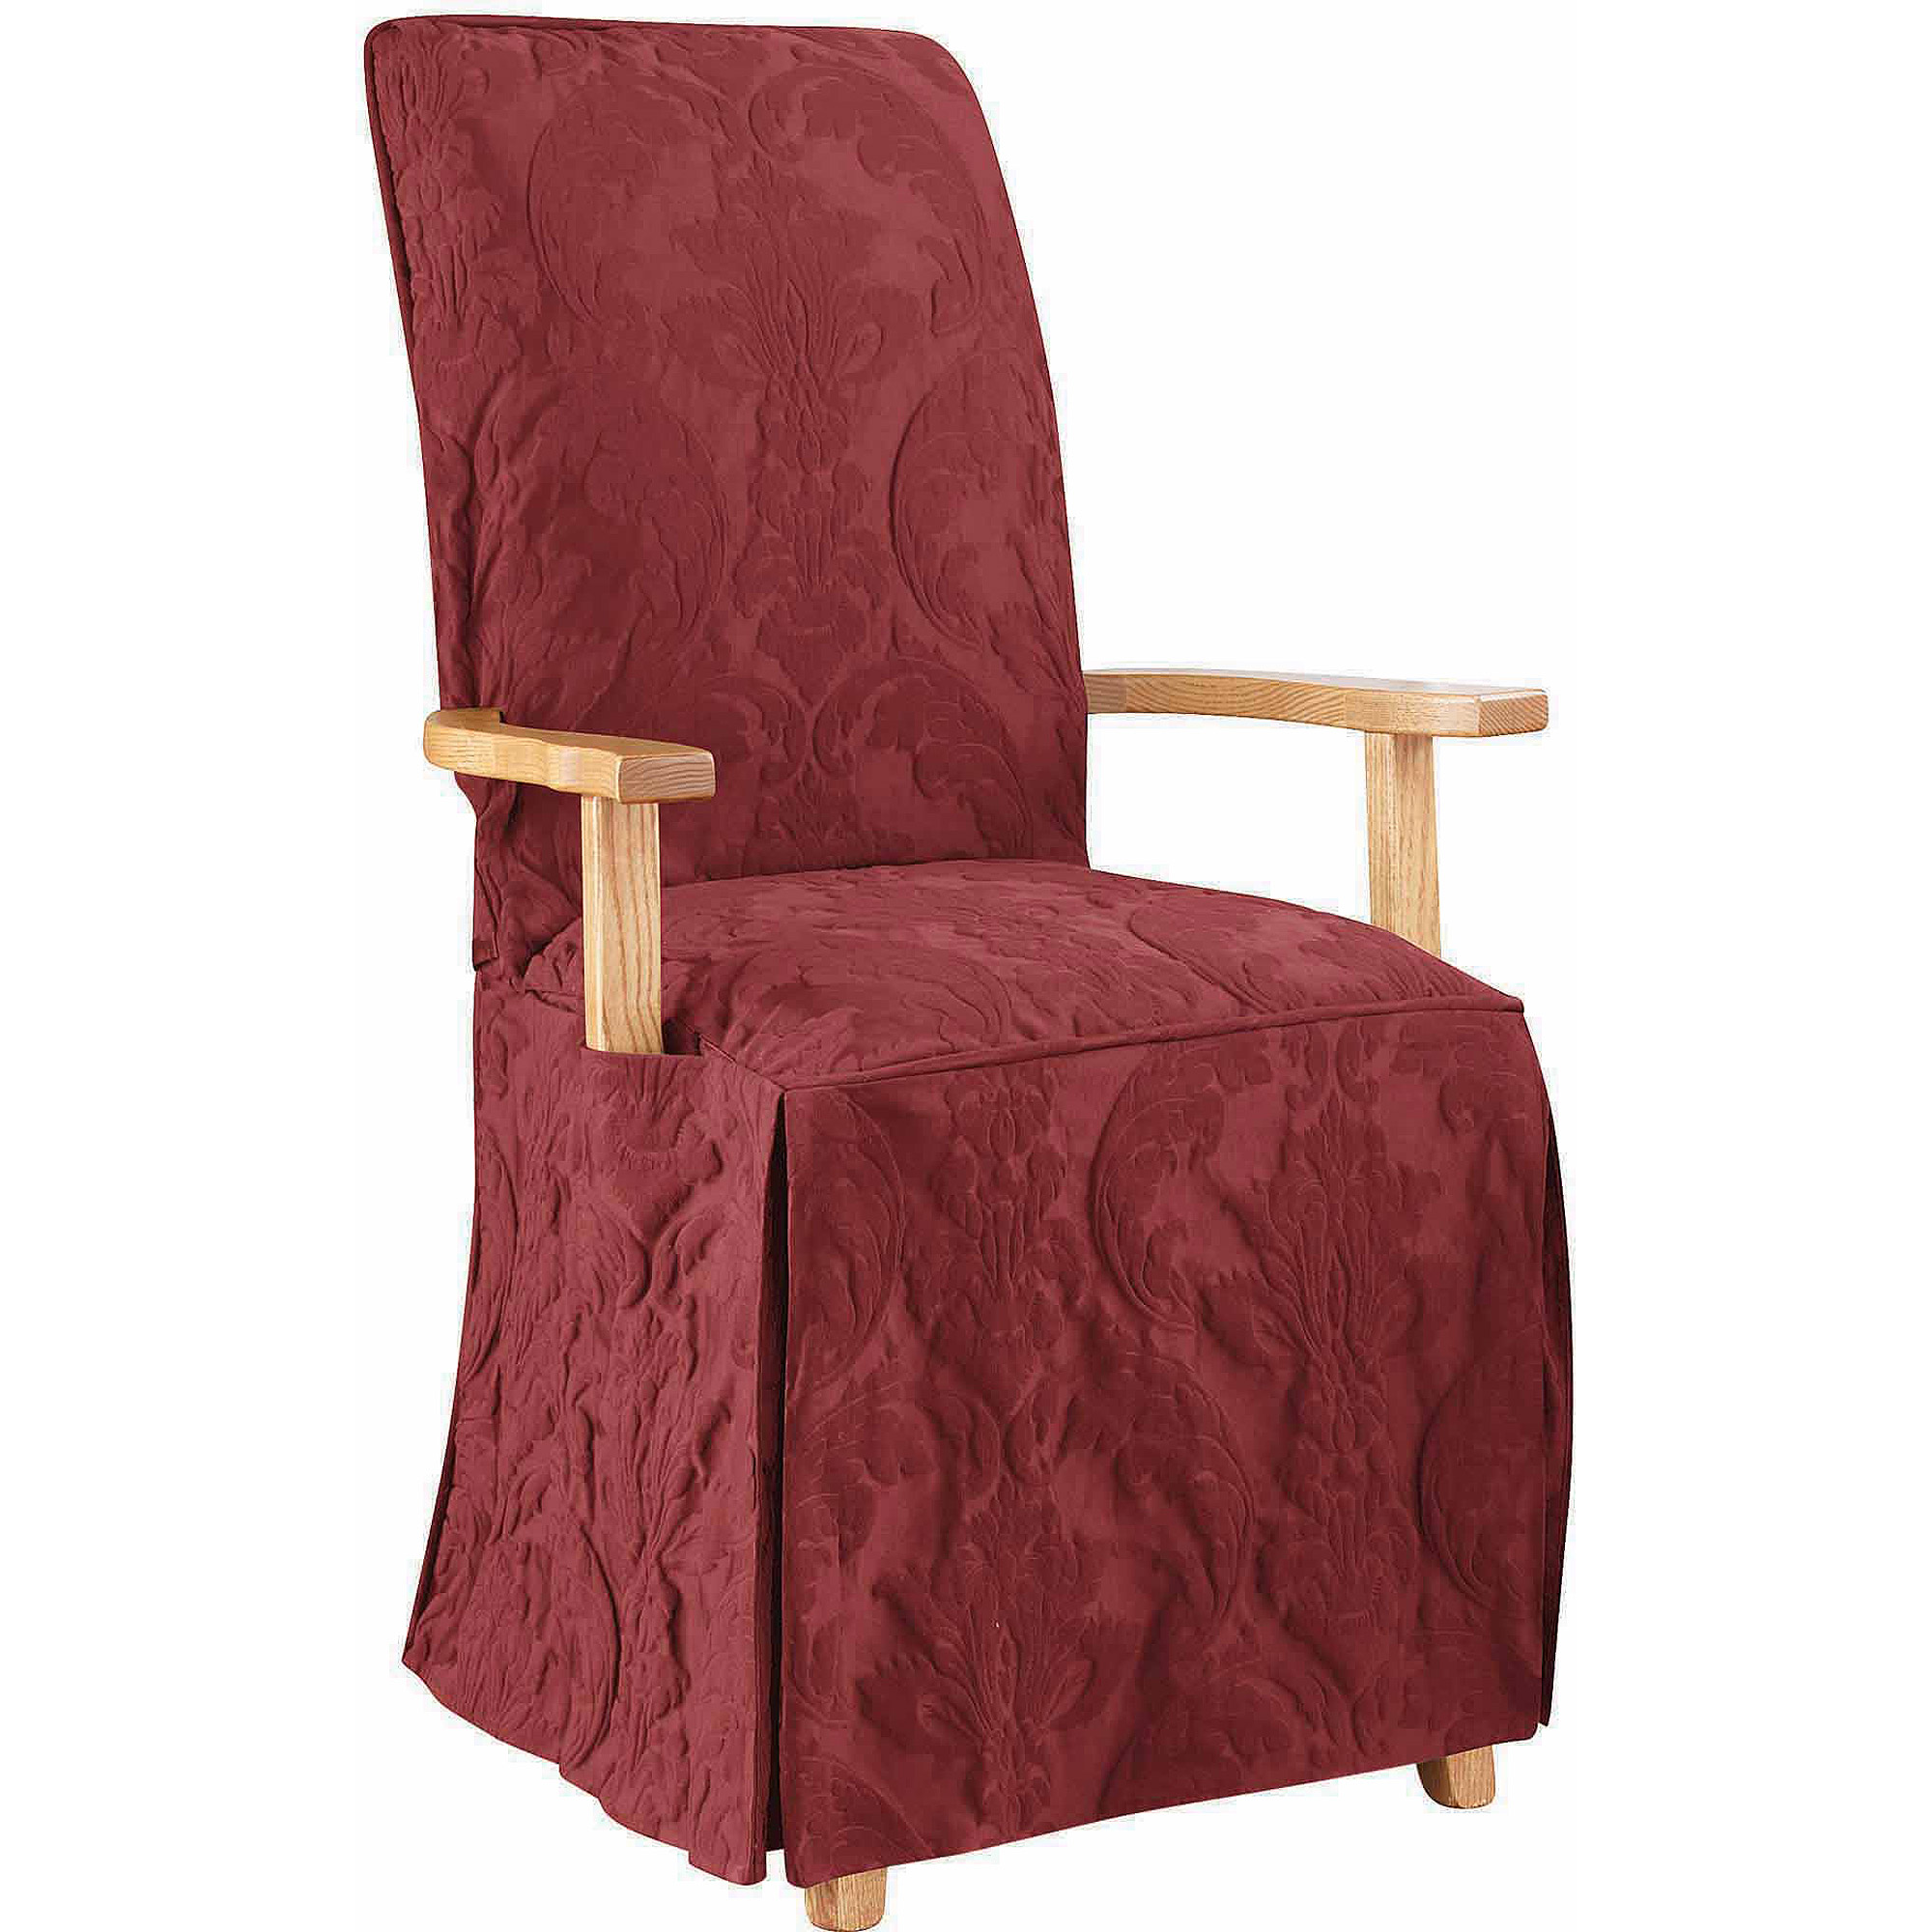 Sure Fit Matelasse Damask Arm Long Dining Chair Slipcover - Walmart.com